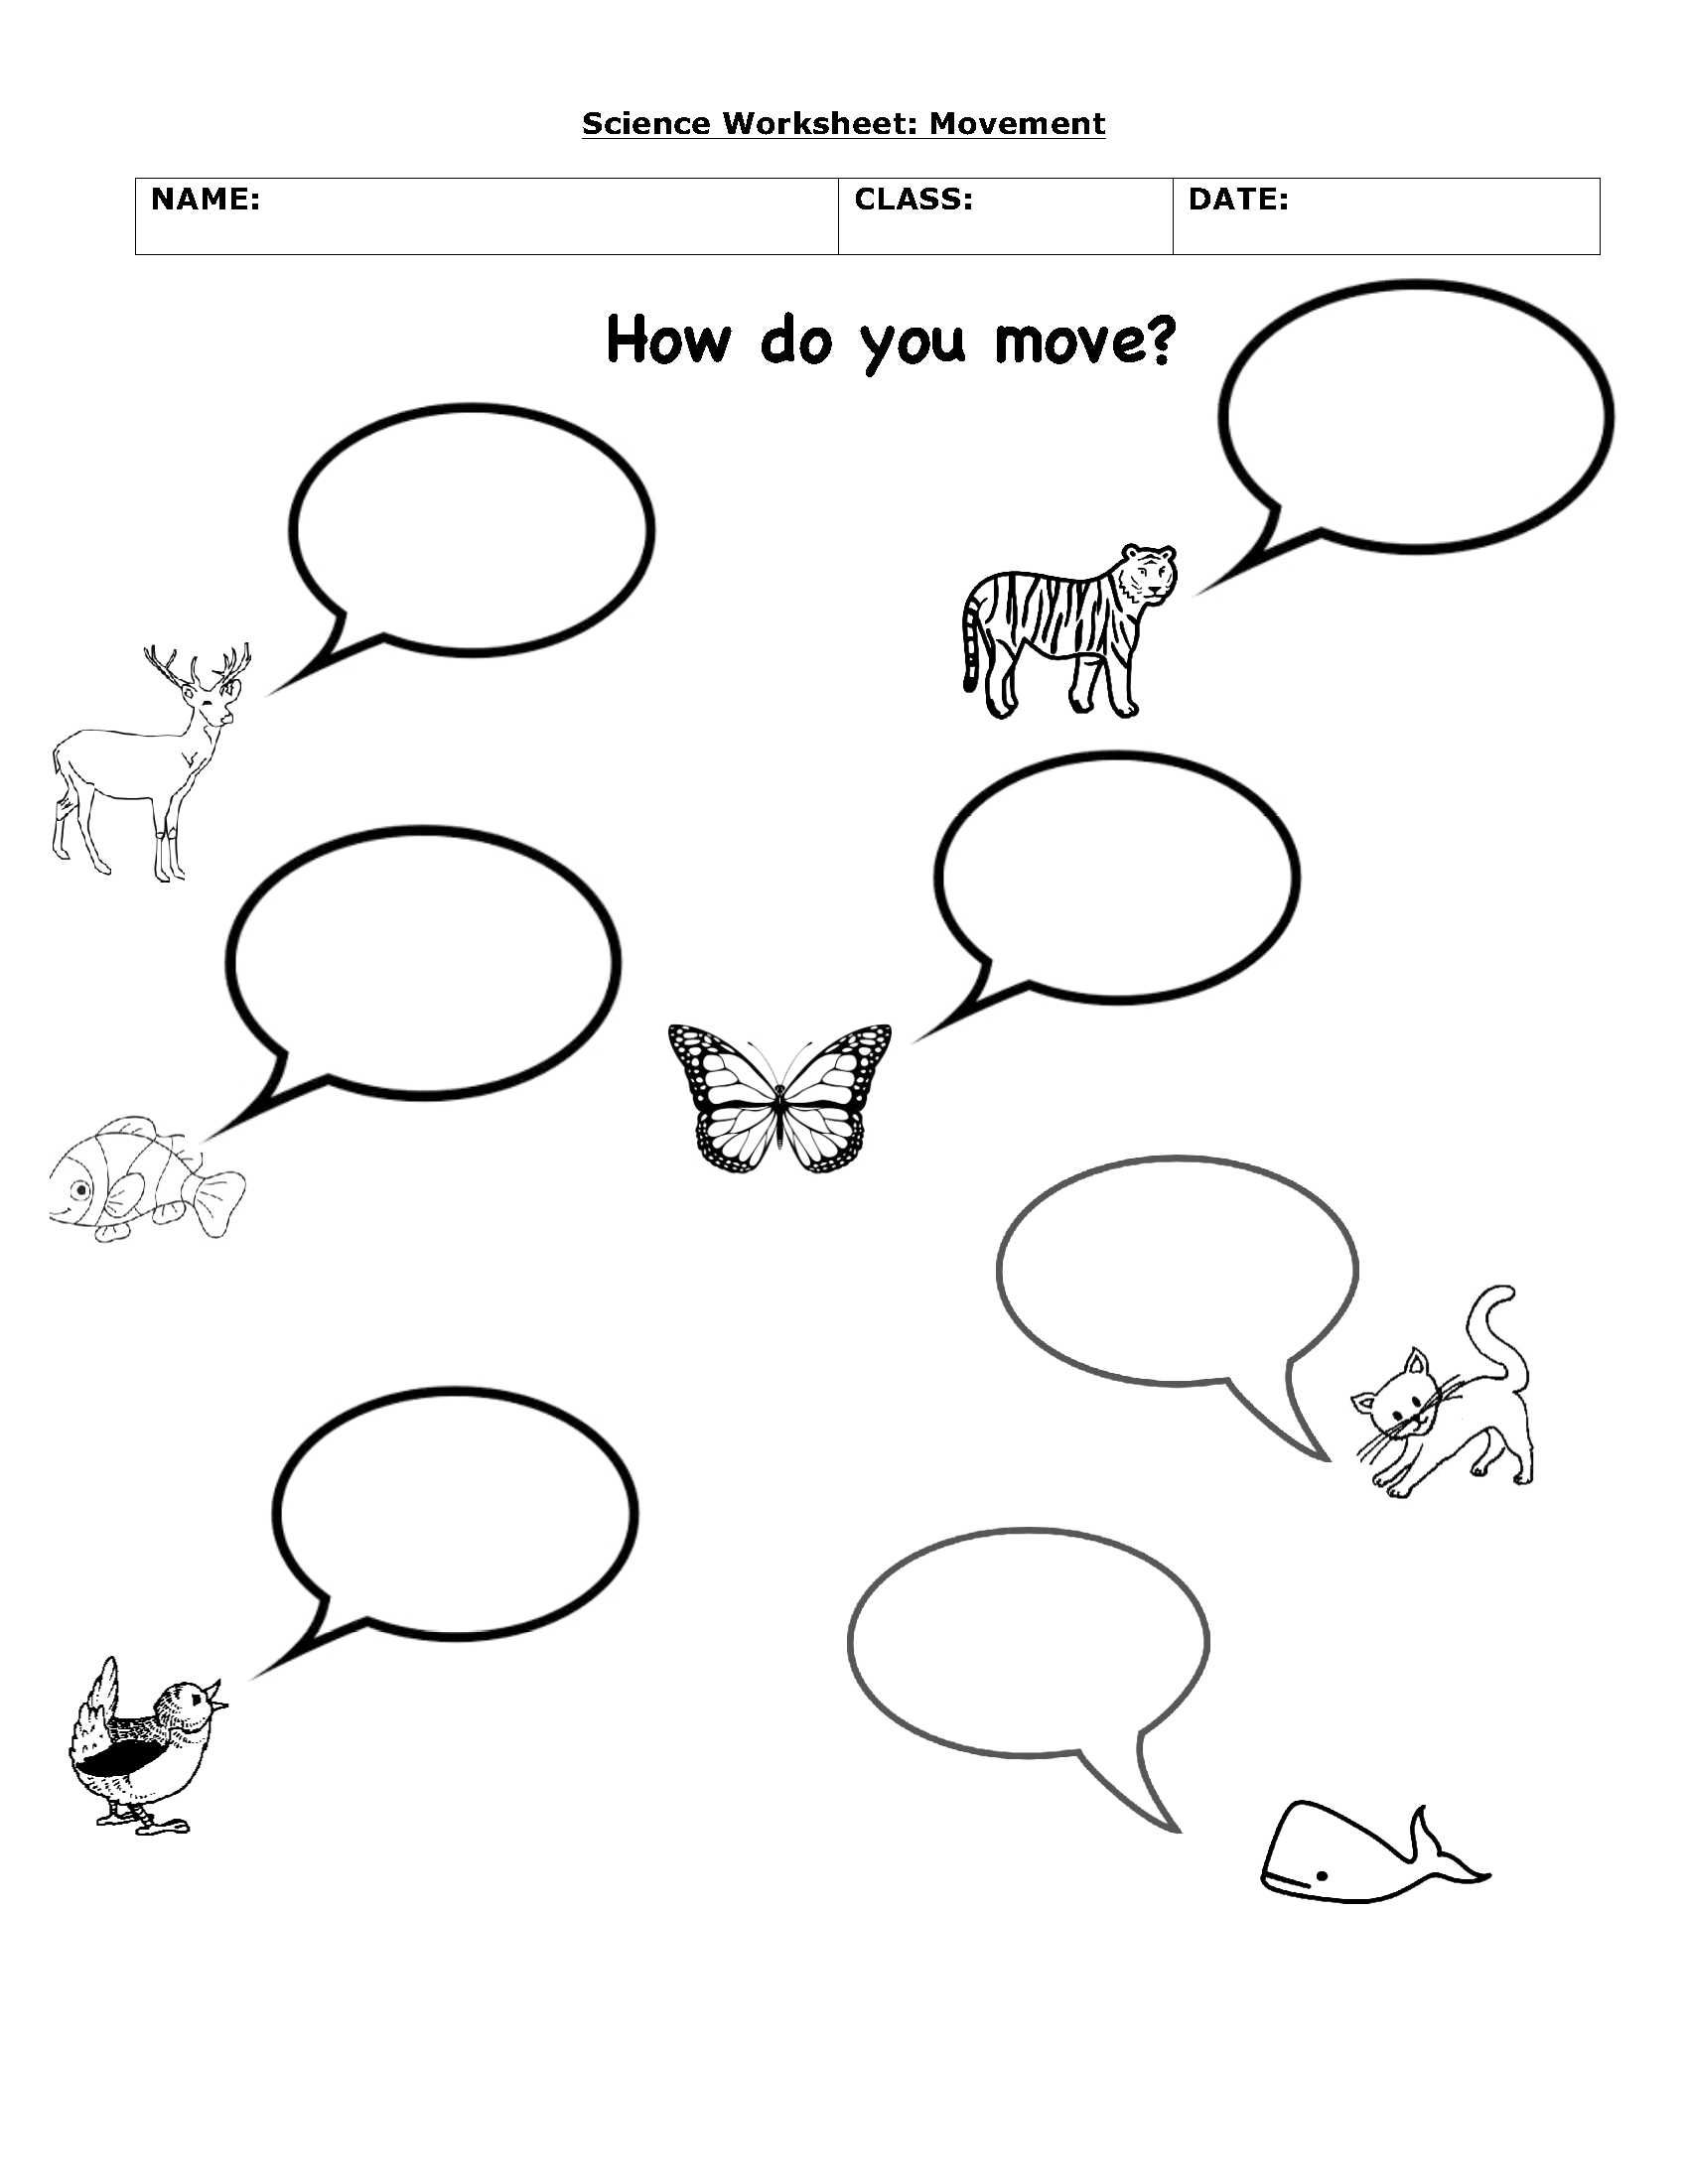 How Animals Move Science Worksheets Free Kindergarten Worksheets Kindergarten Worksheets Printable